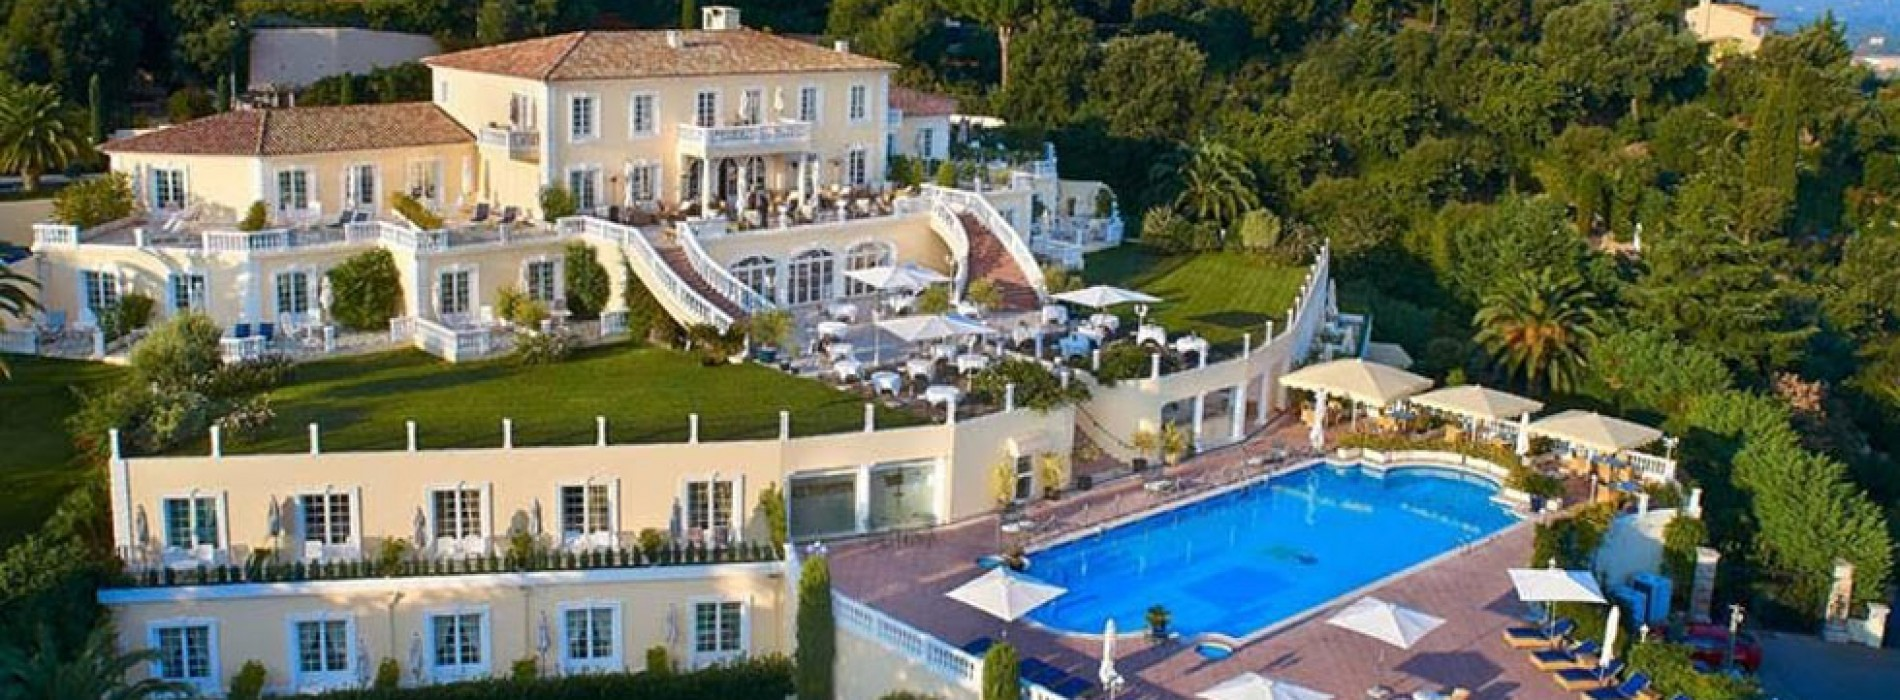 Althoff hotel villa belrose in saint tropez joins small for Small luxury hotel